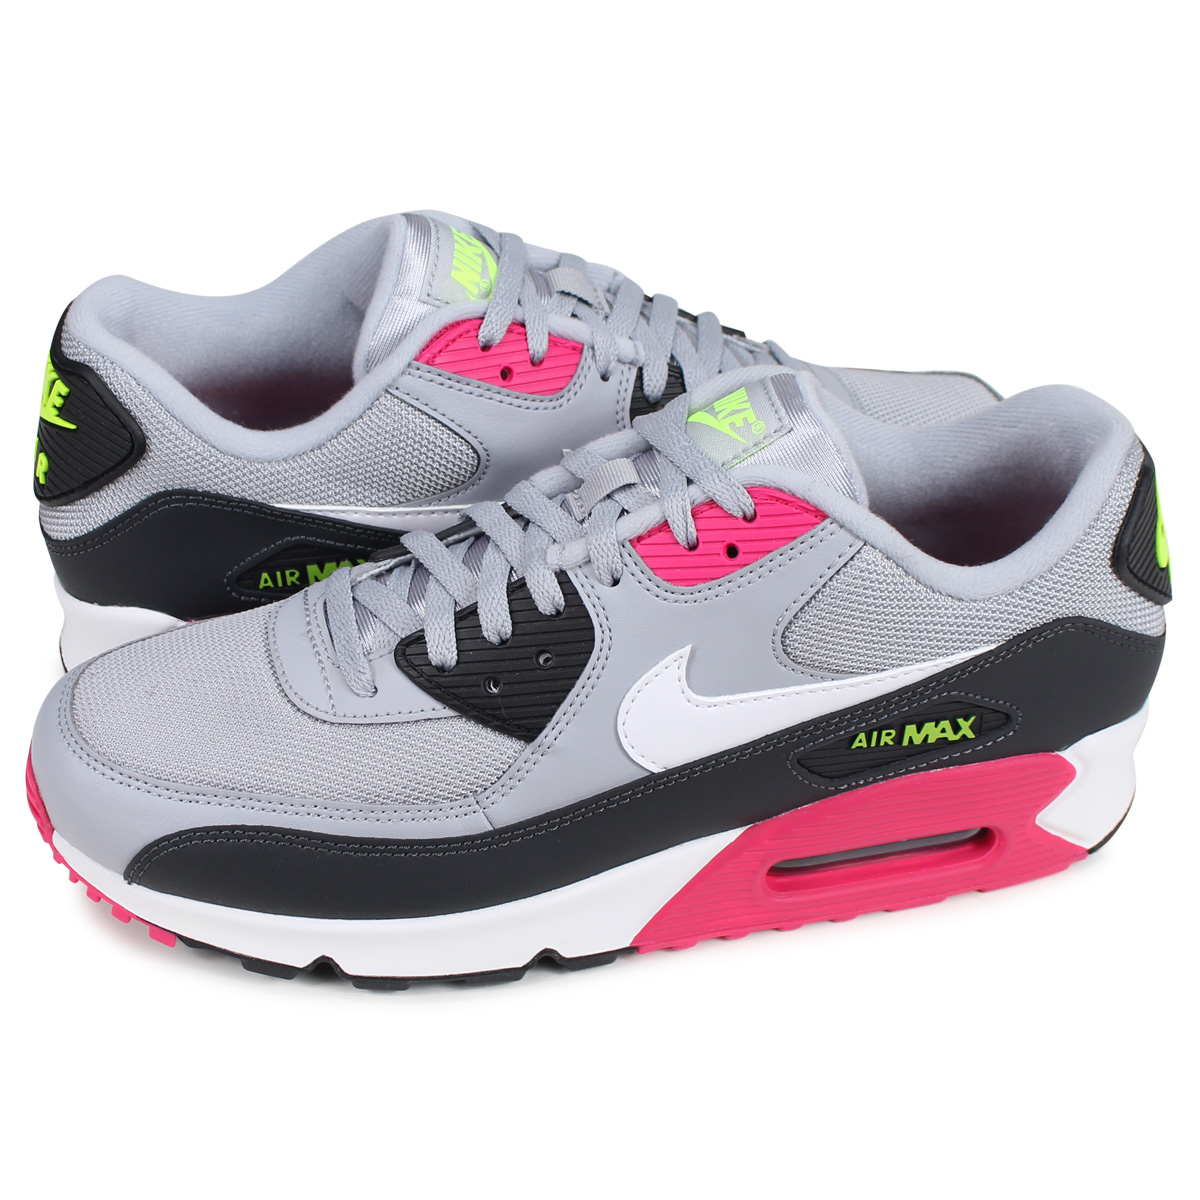 Nike NIKE Air Max 90 essential sneakers men AIR MAX 90 ESSENTIAL gray AJ1285 020